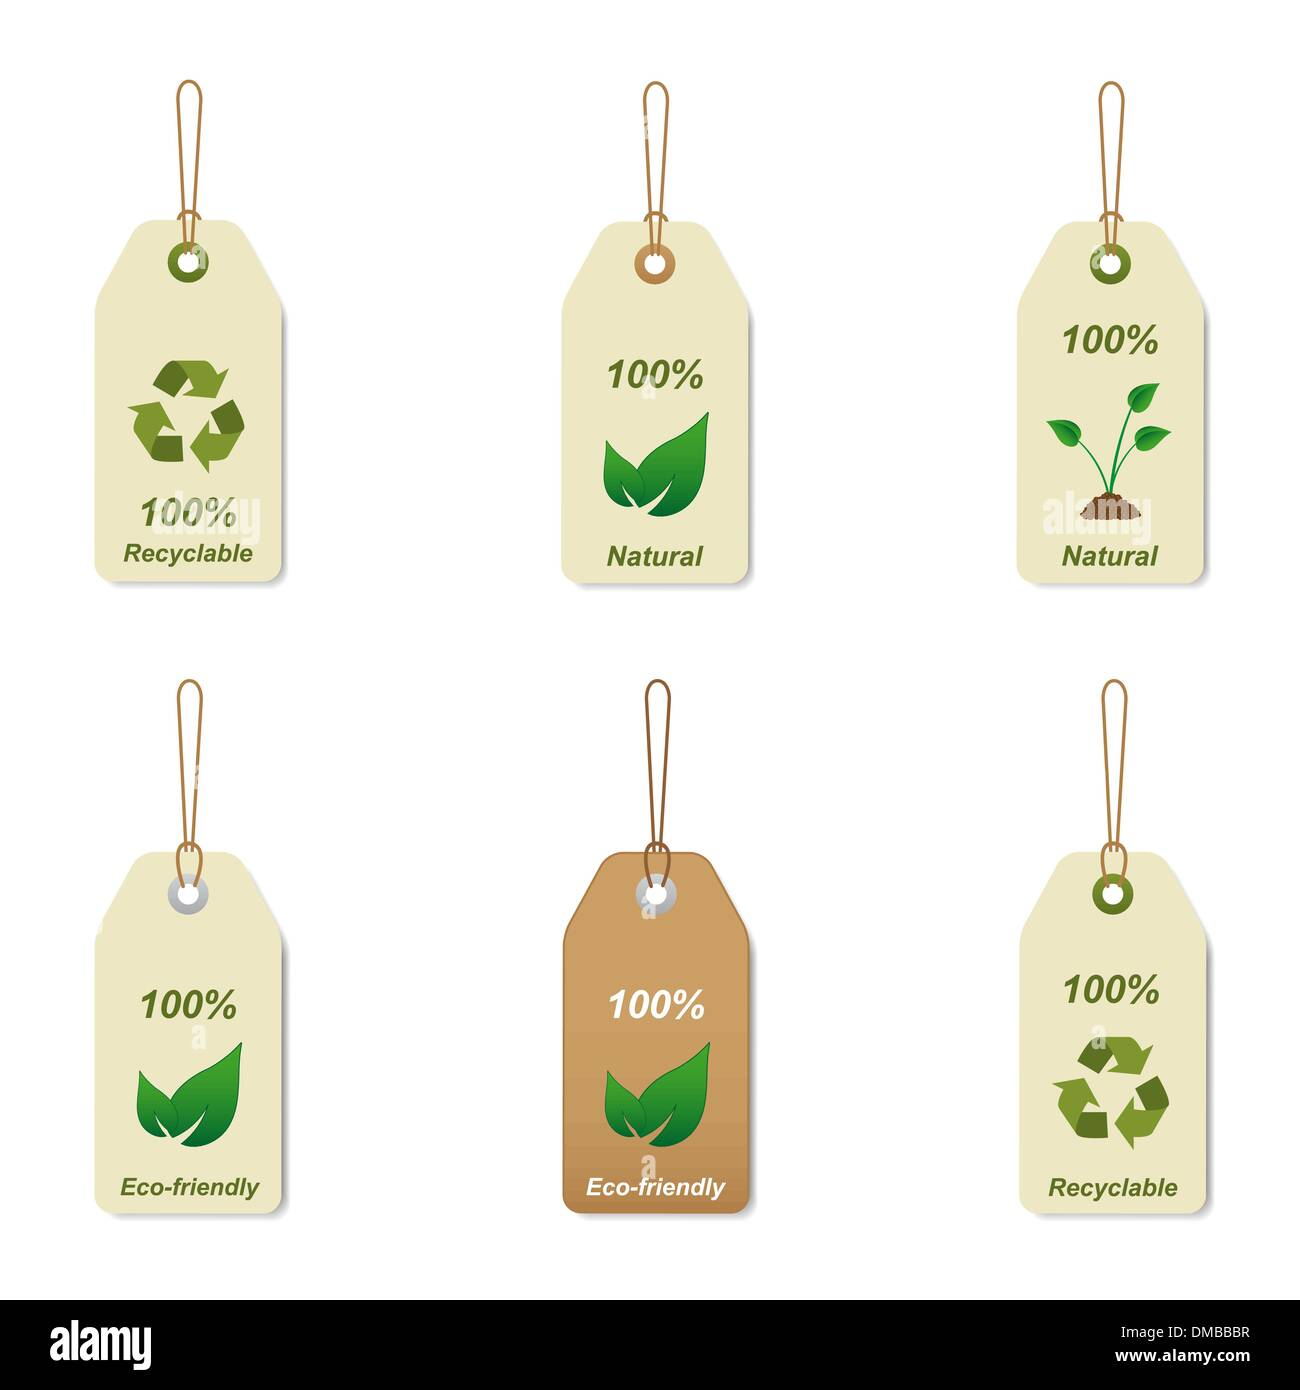 Recyclable and natural tags - Stock Image